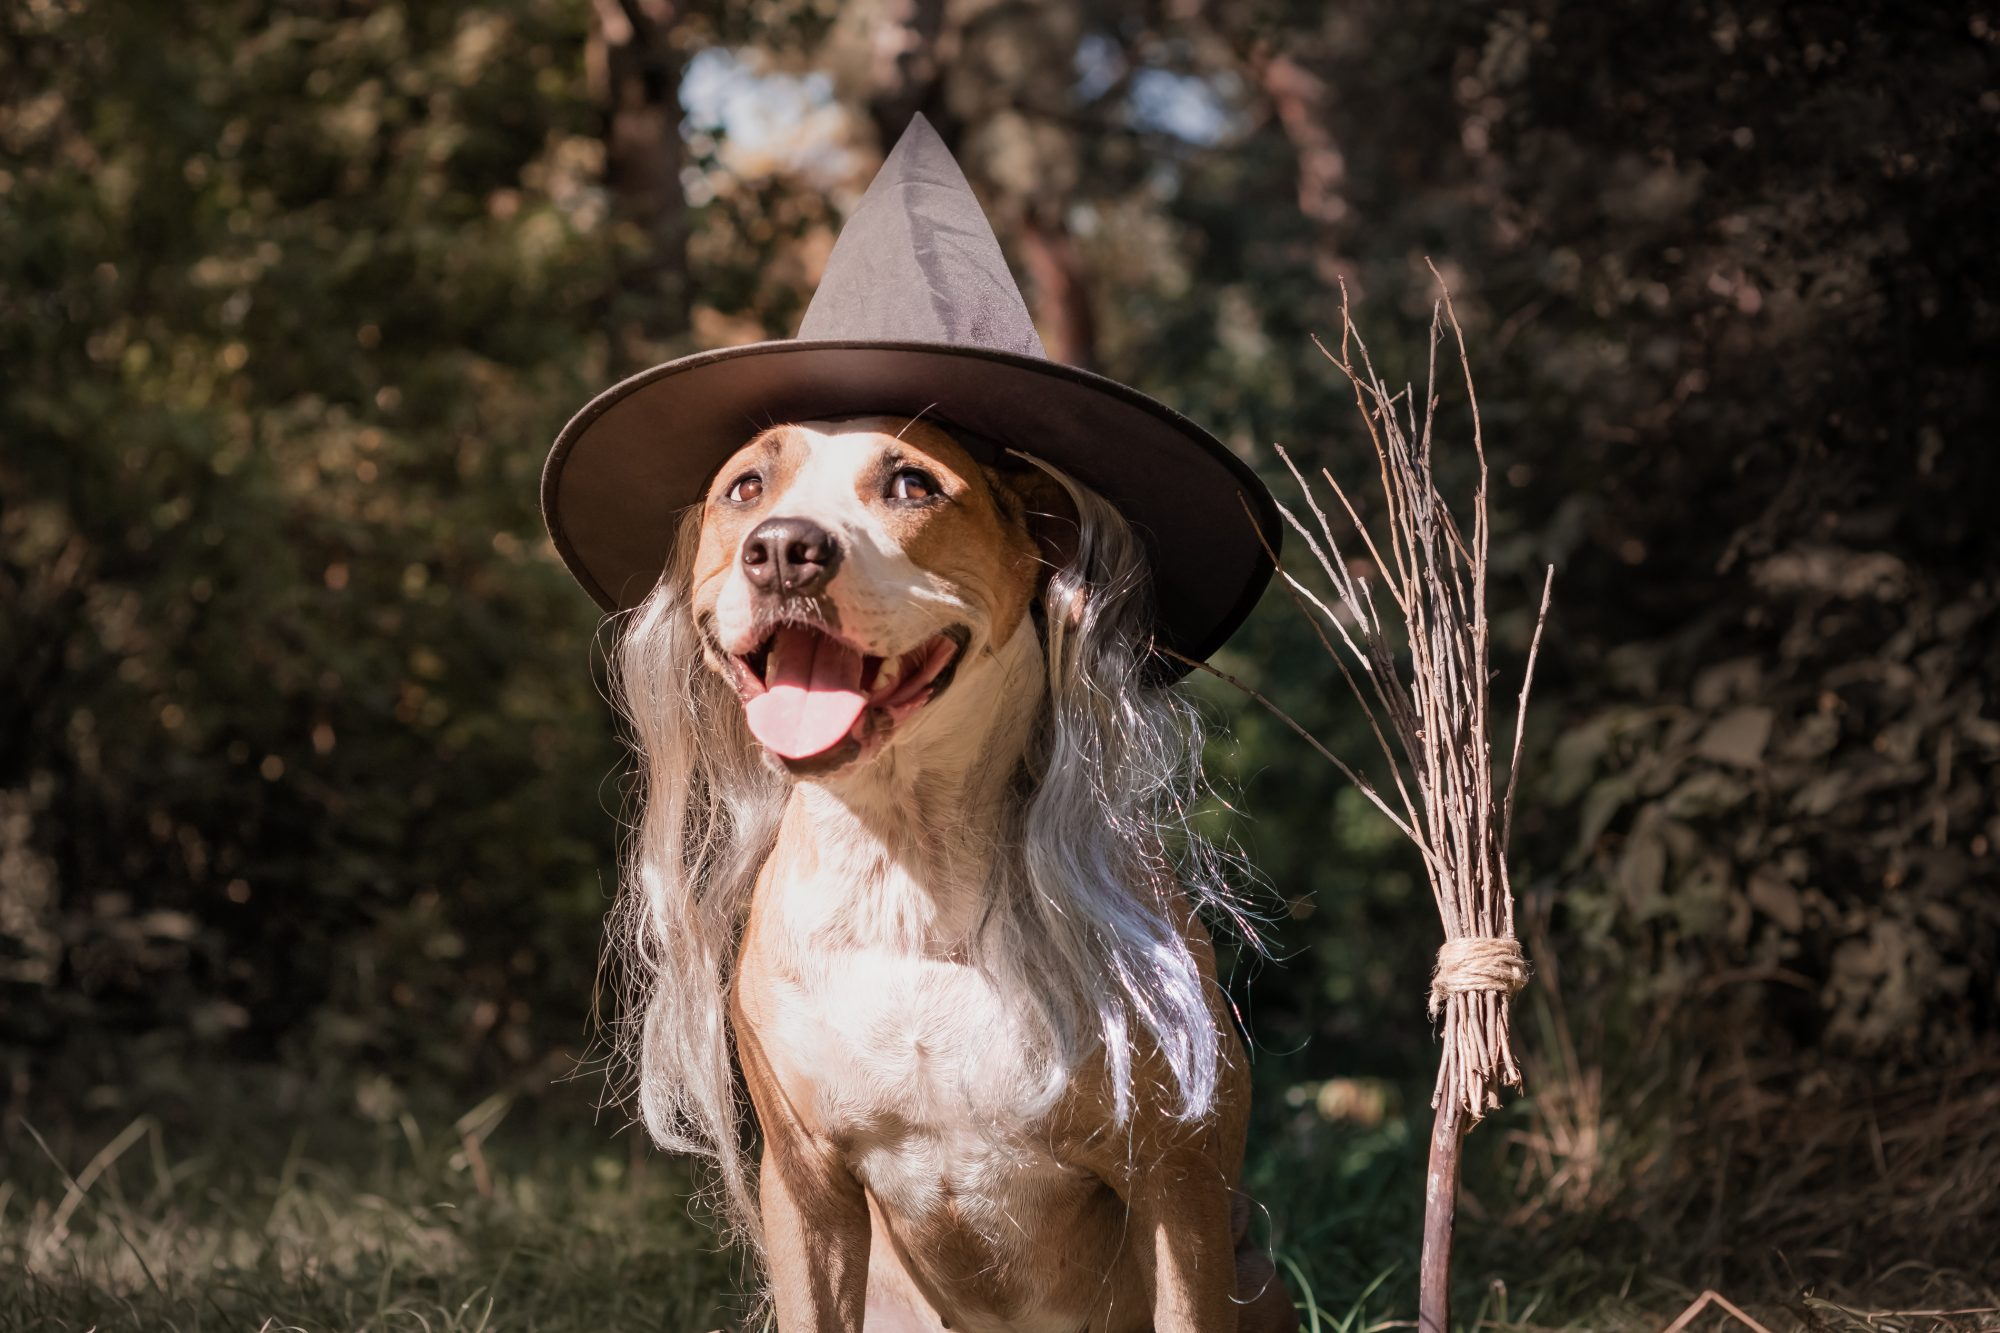 staffordshire terrier puppy with broomstick dressed up in witch costume for halloween